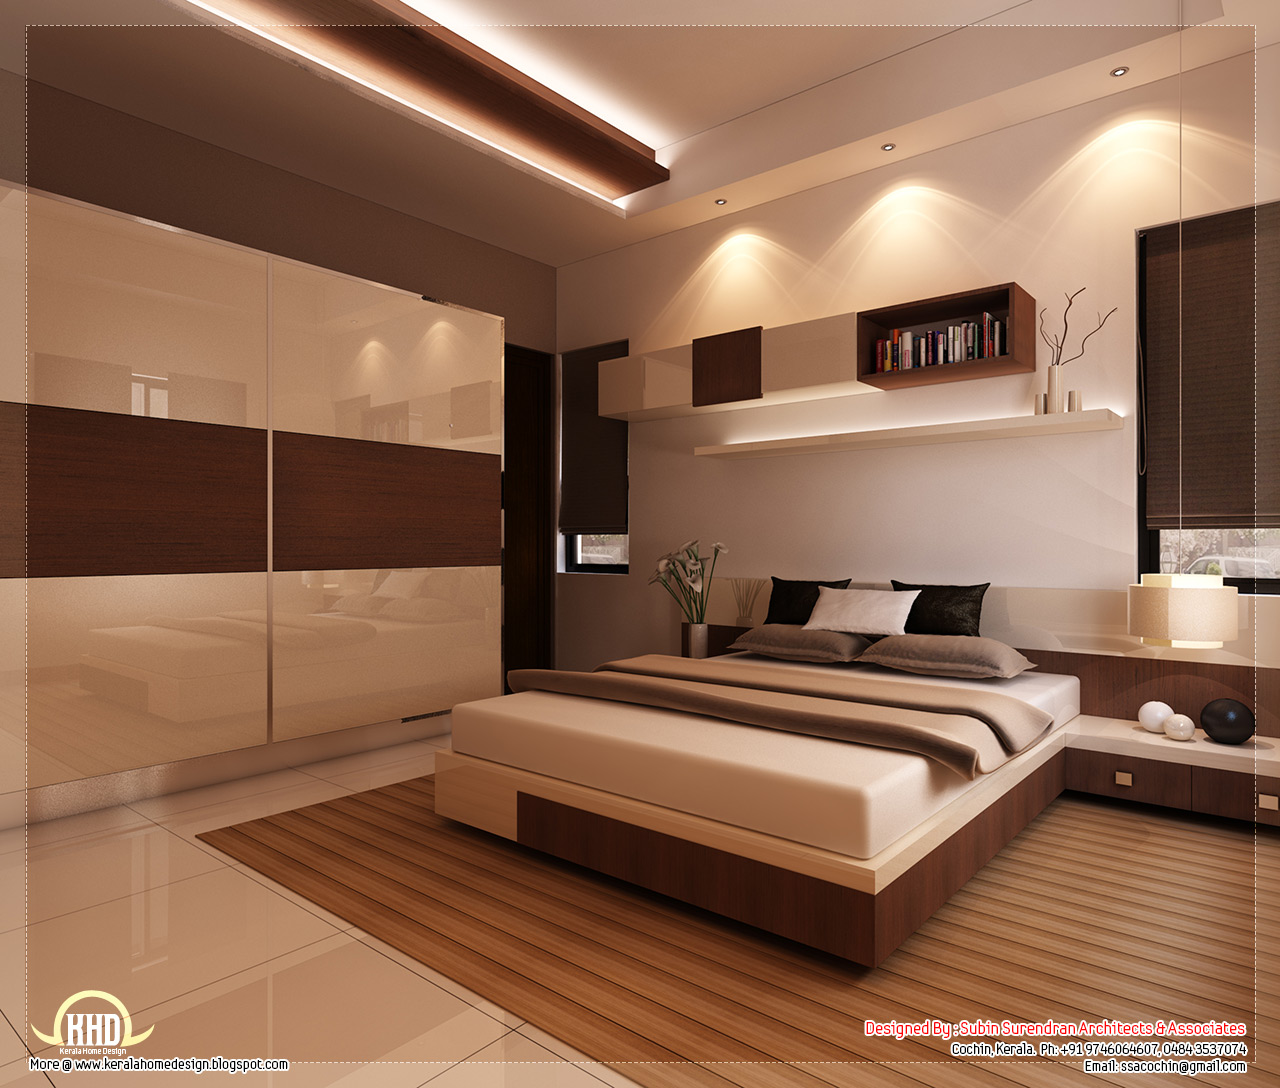 Kerala home design interior bedroom - Dining Room Interior Bedroom Interior